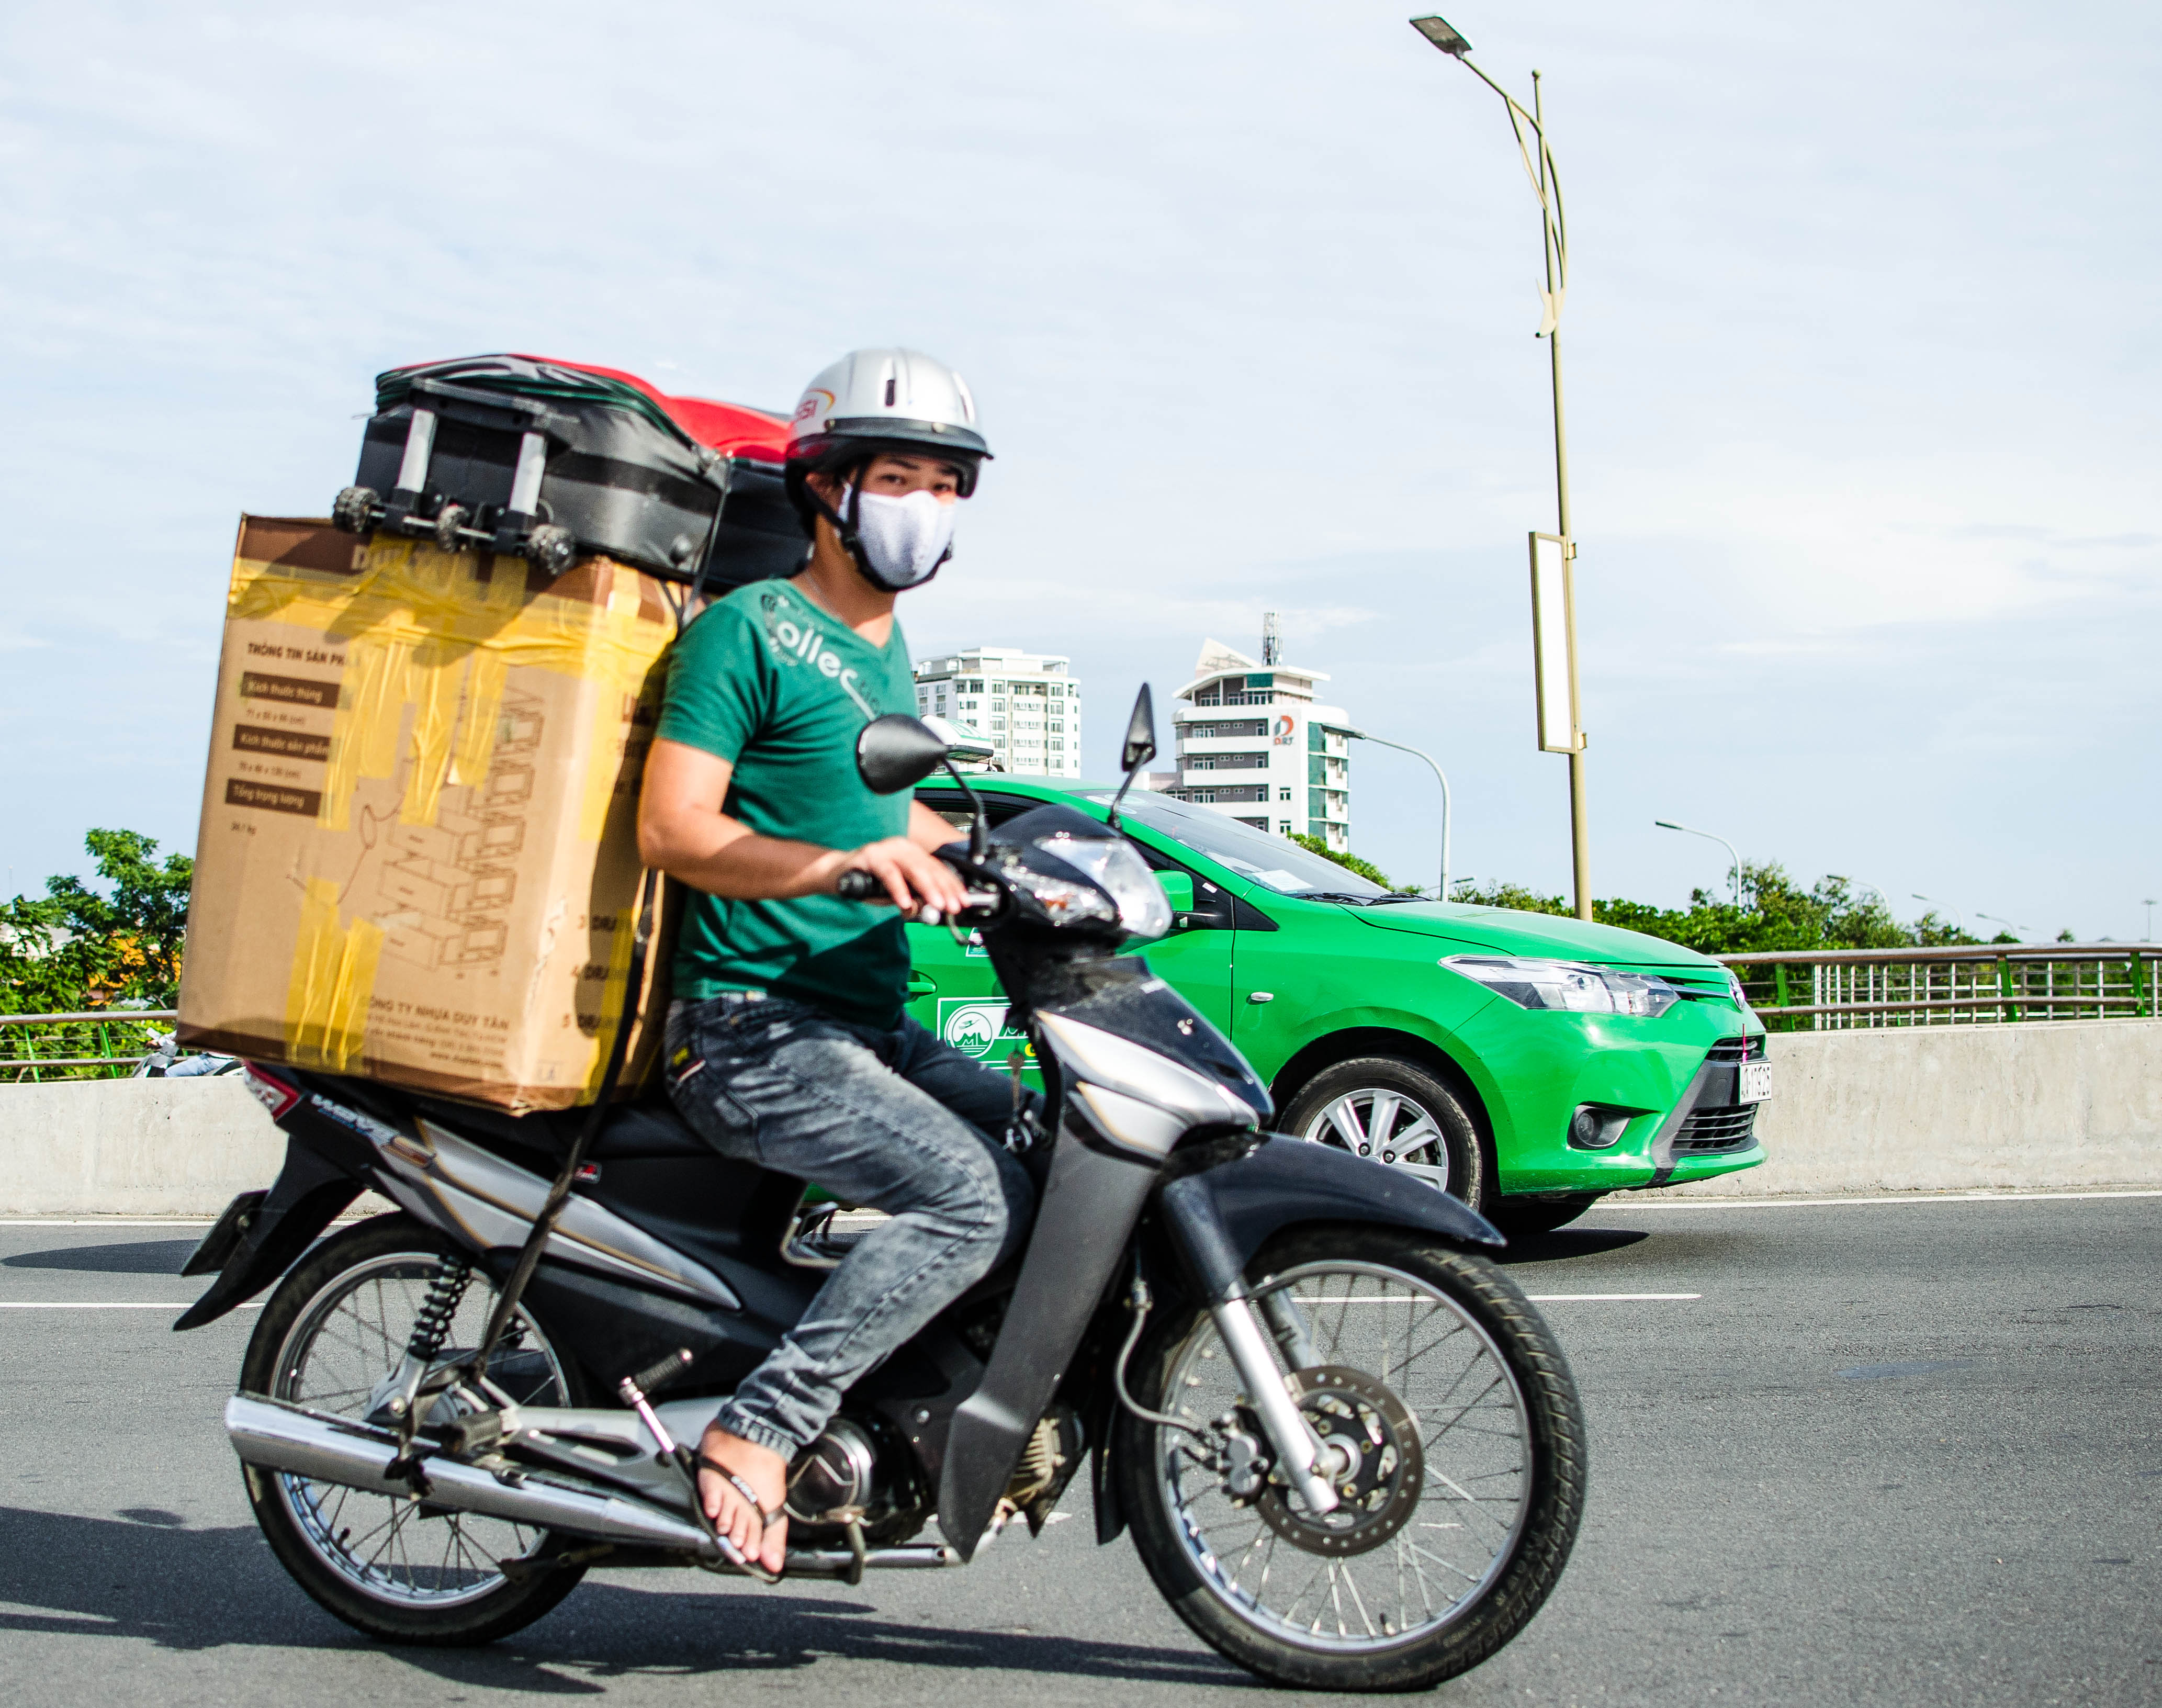 Rent and drive a scooter in Vietnam: Have a thrilling adventure - The Blond Travels